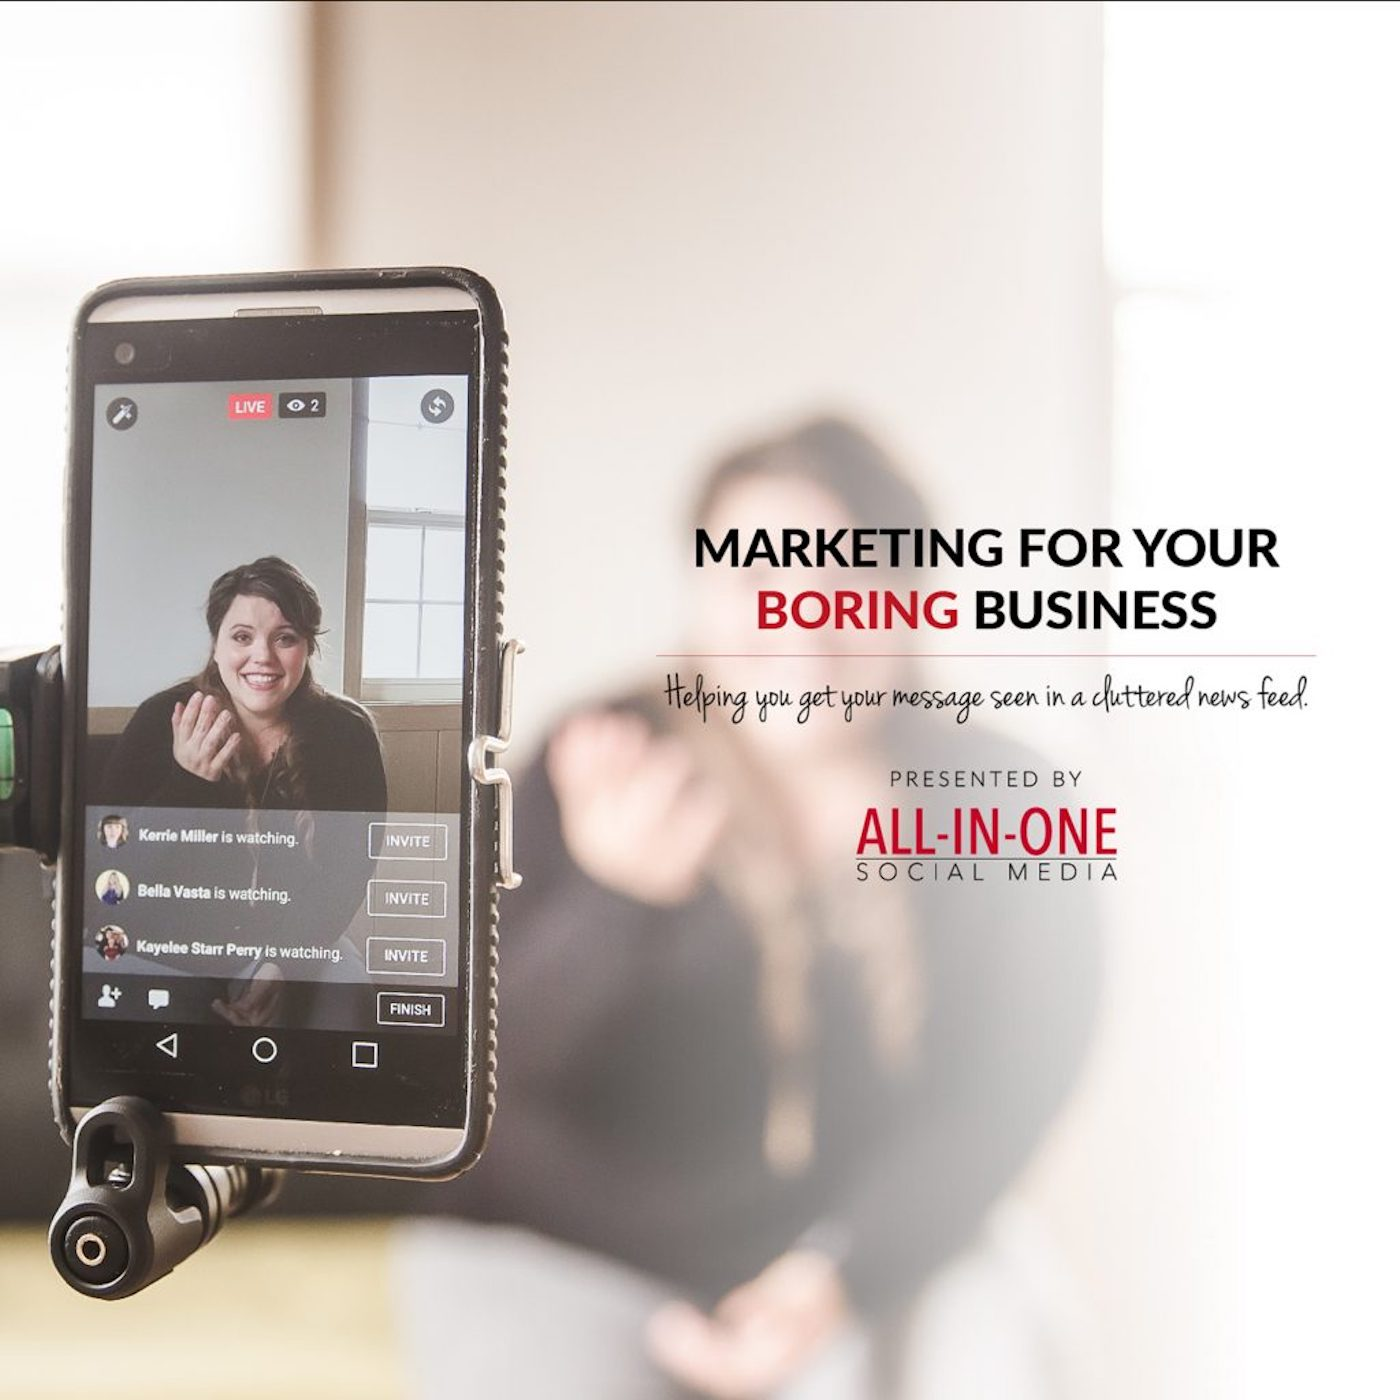 Marketing For Your Boring Business